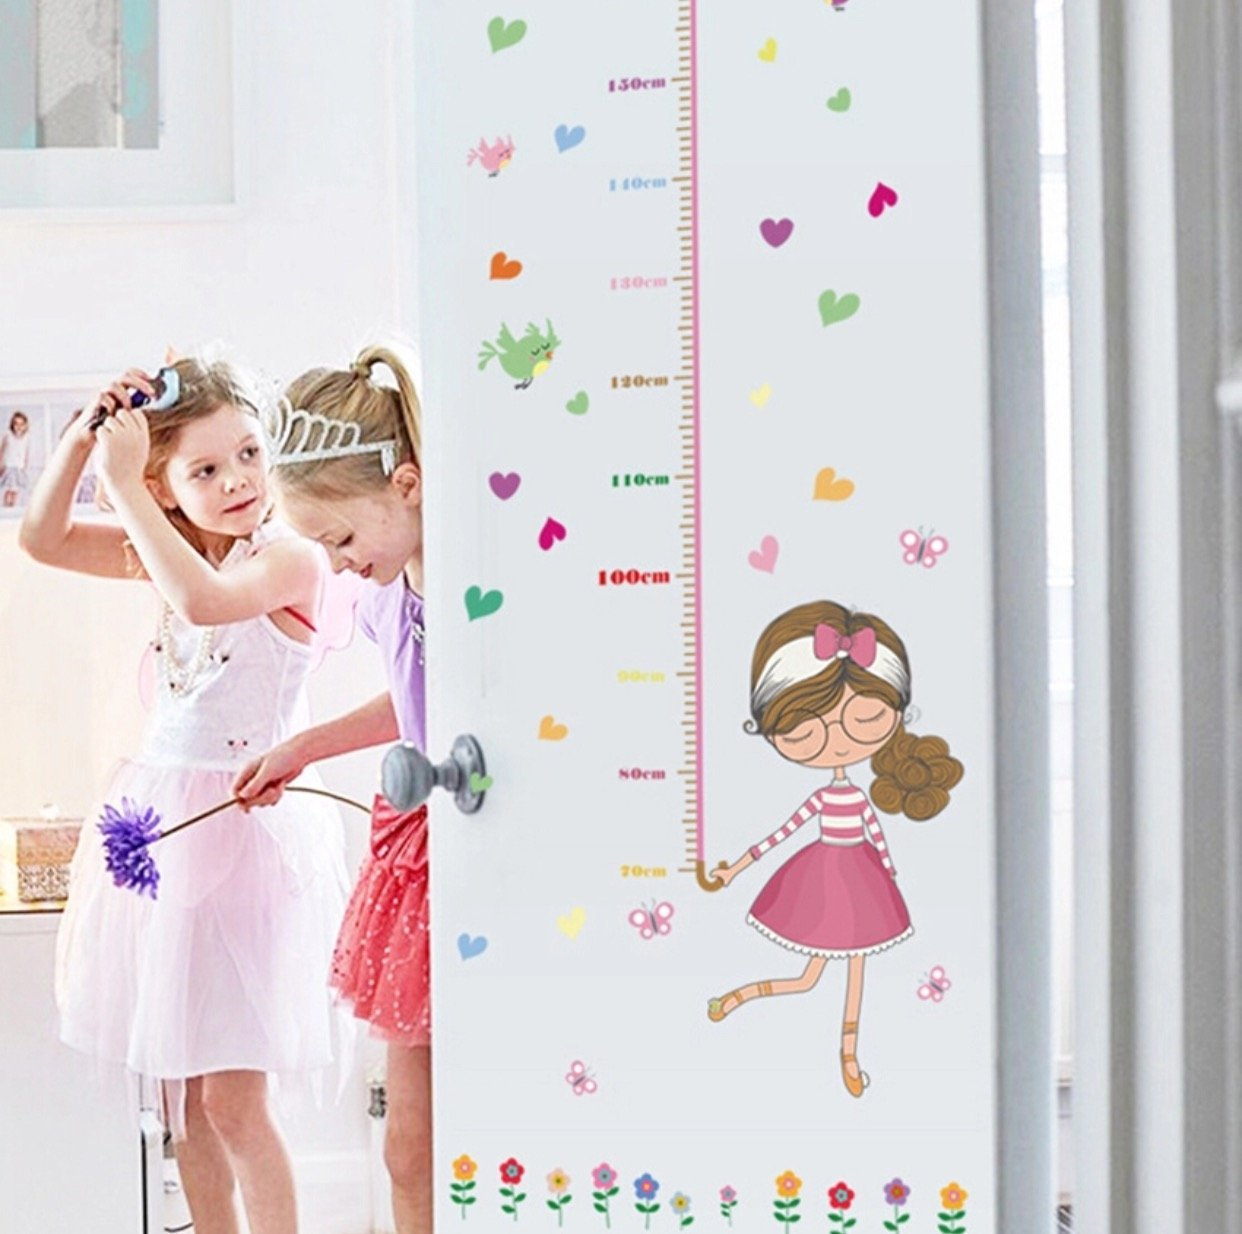 Decorative Children Room Lovely Girl Removable Wall Stickers Height Measure For Kids Room Wall Decal Home Decals Christmas Gift CM1022 Sticker world